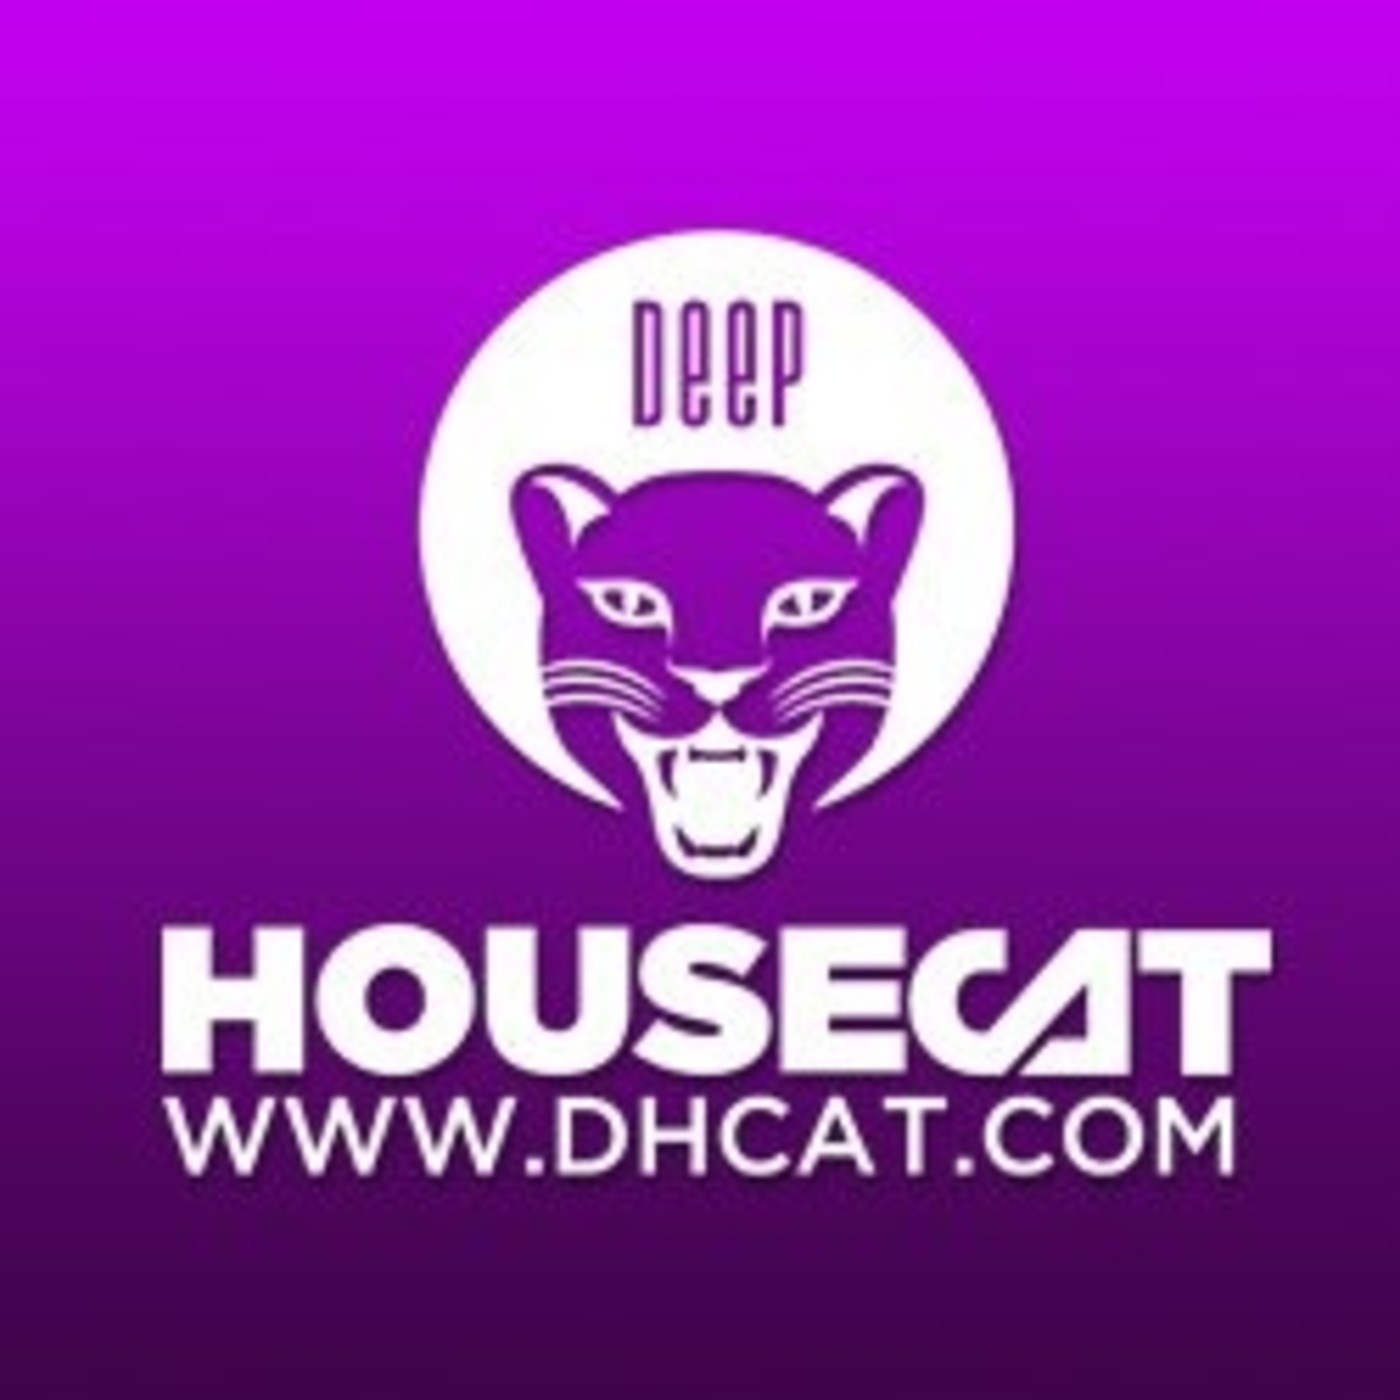 Deep House Cat Show - New Moon Mix - feat. Magoo